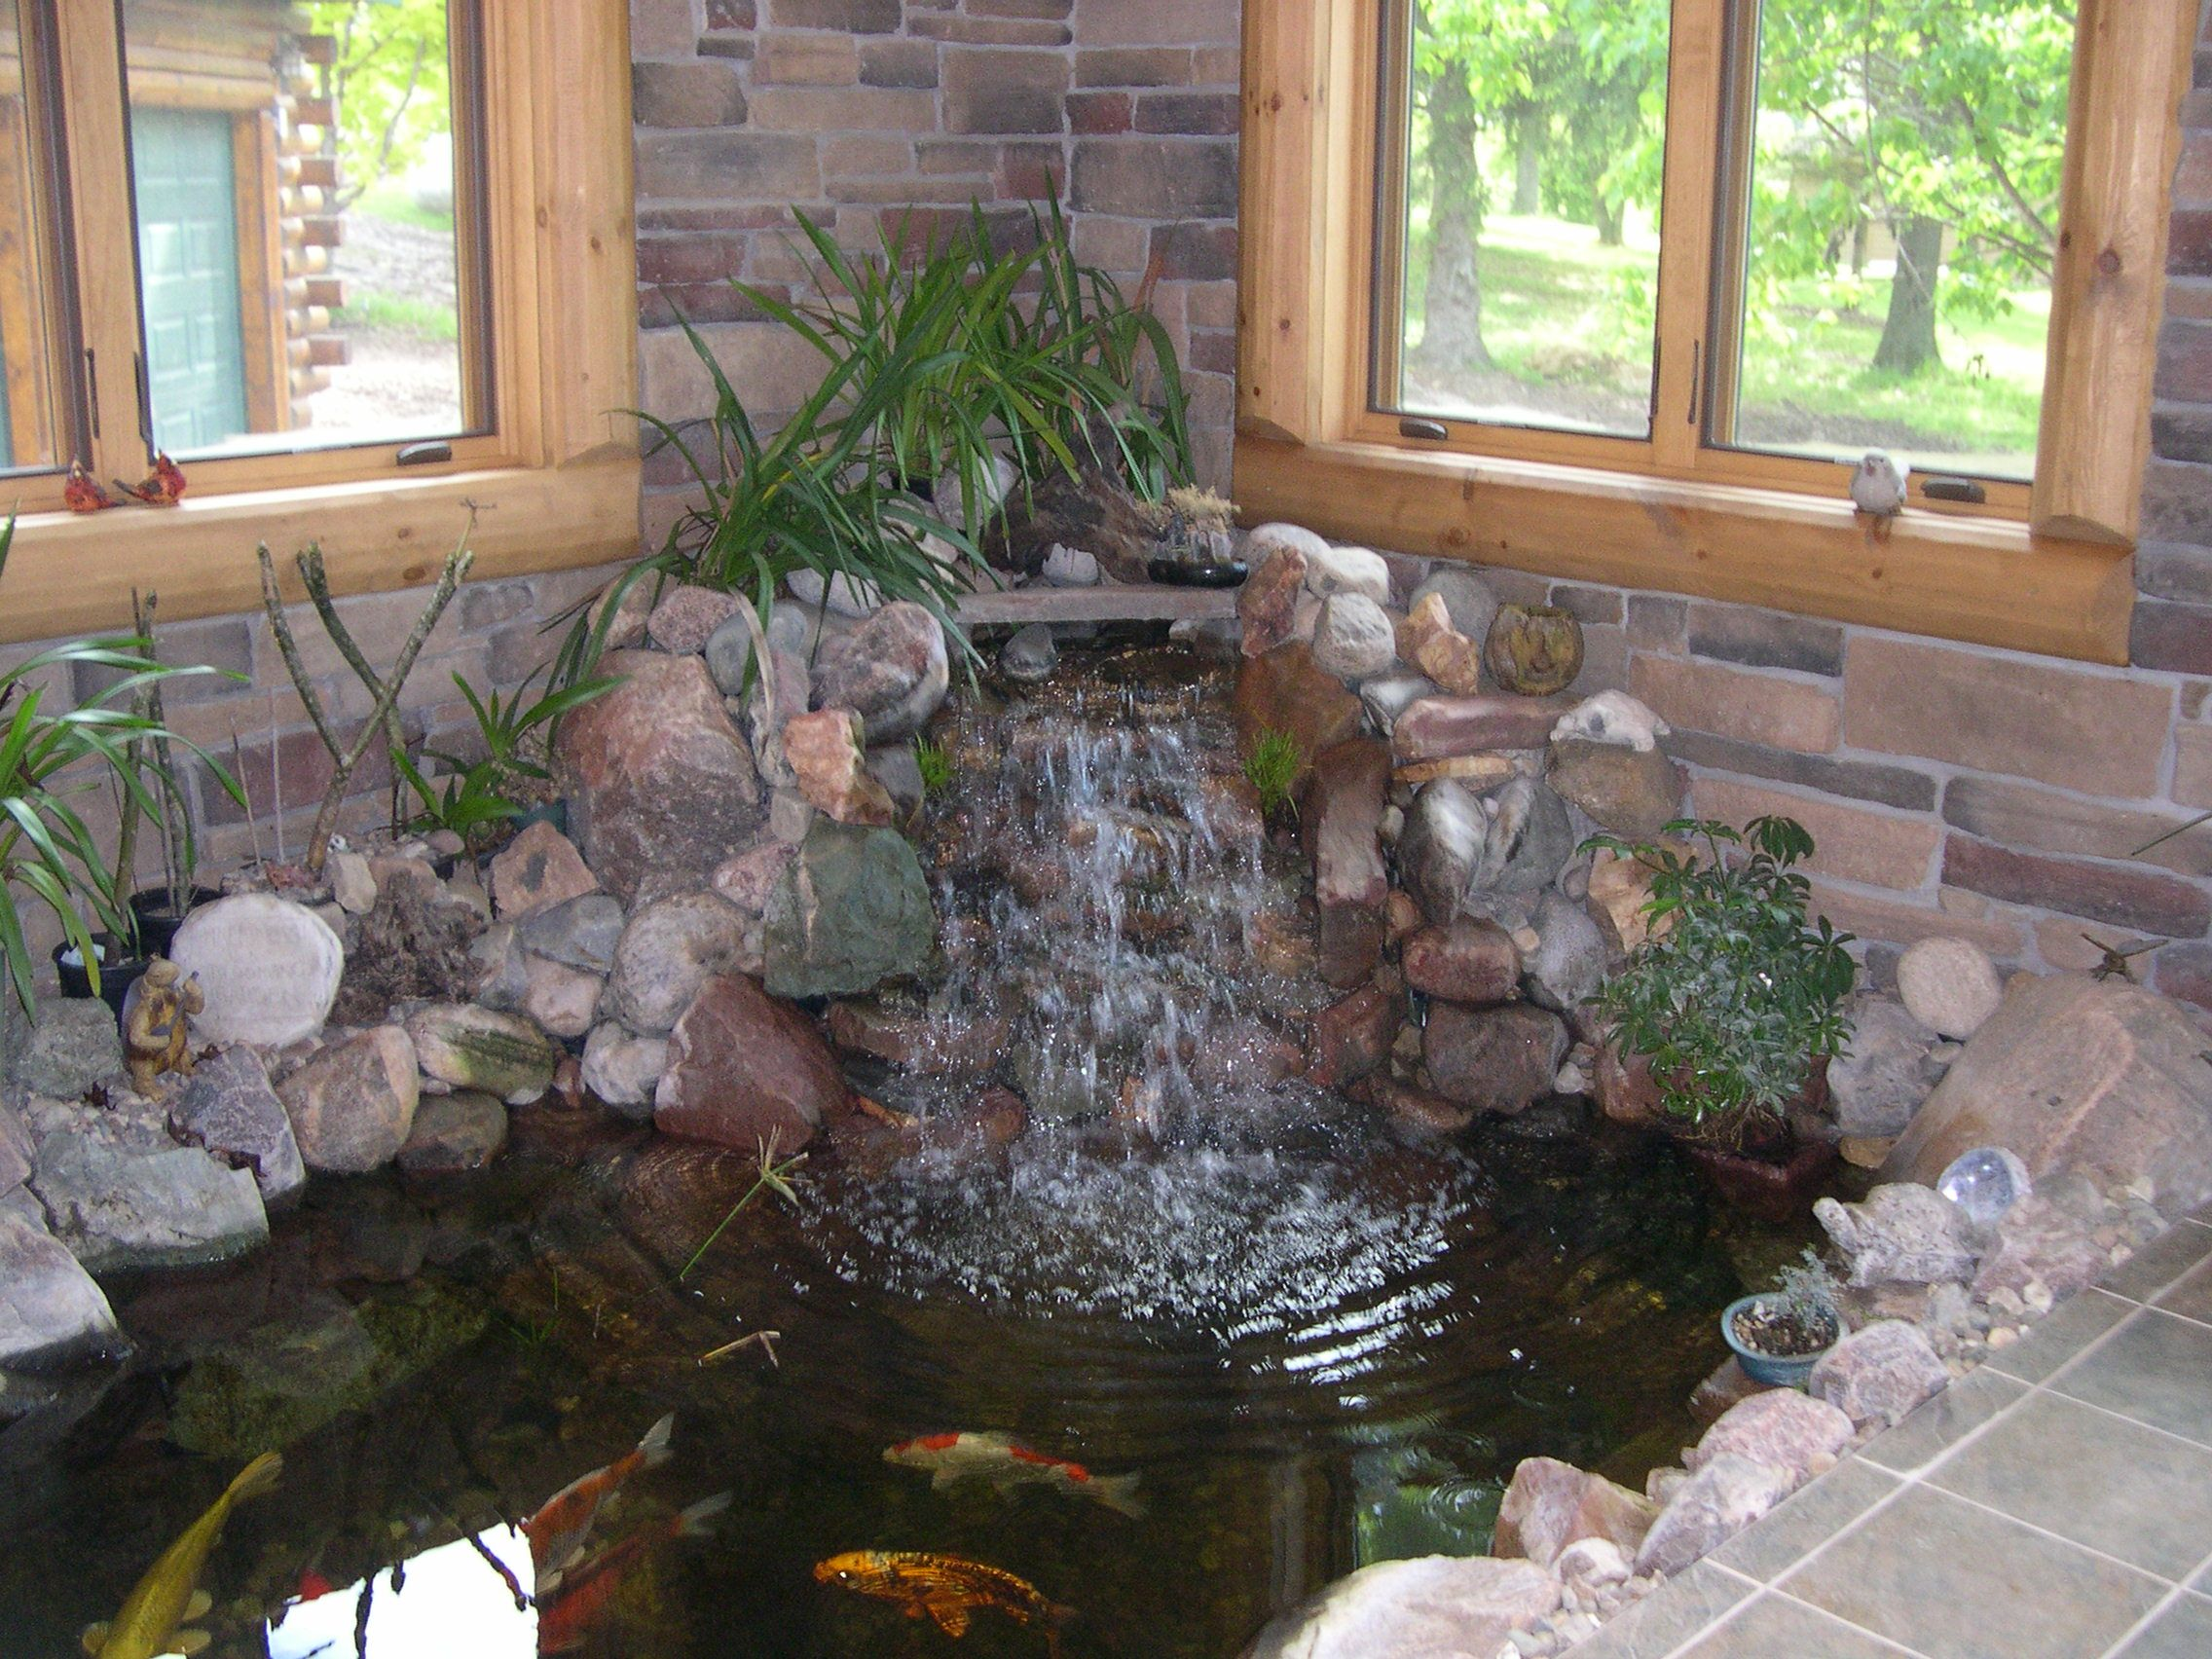 The wakatanka house second floor has an indoor koi pond